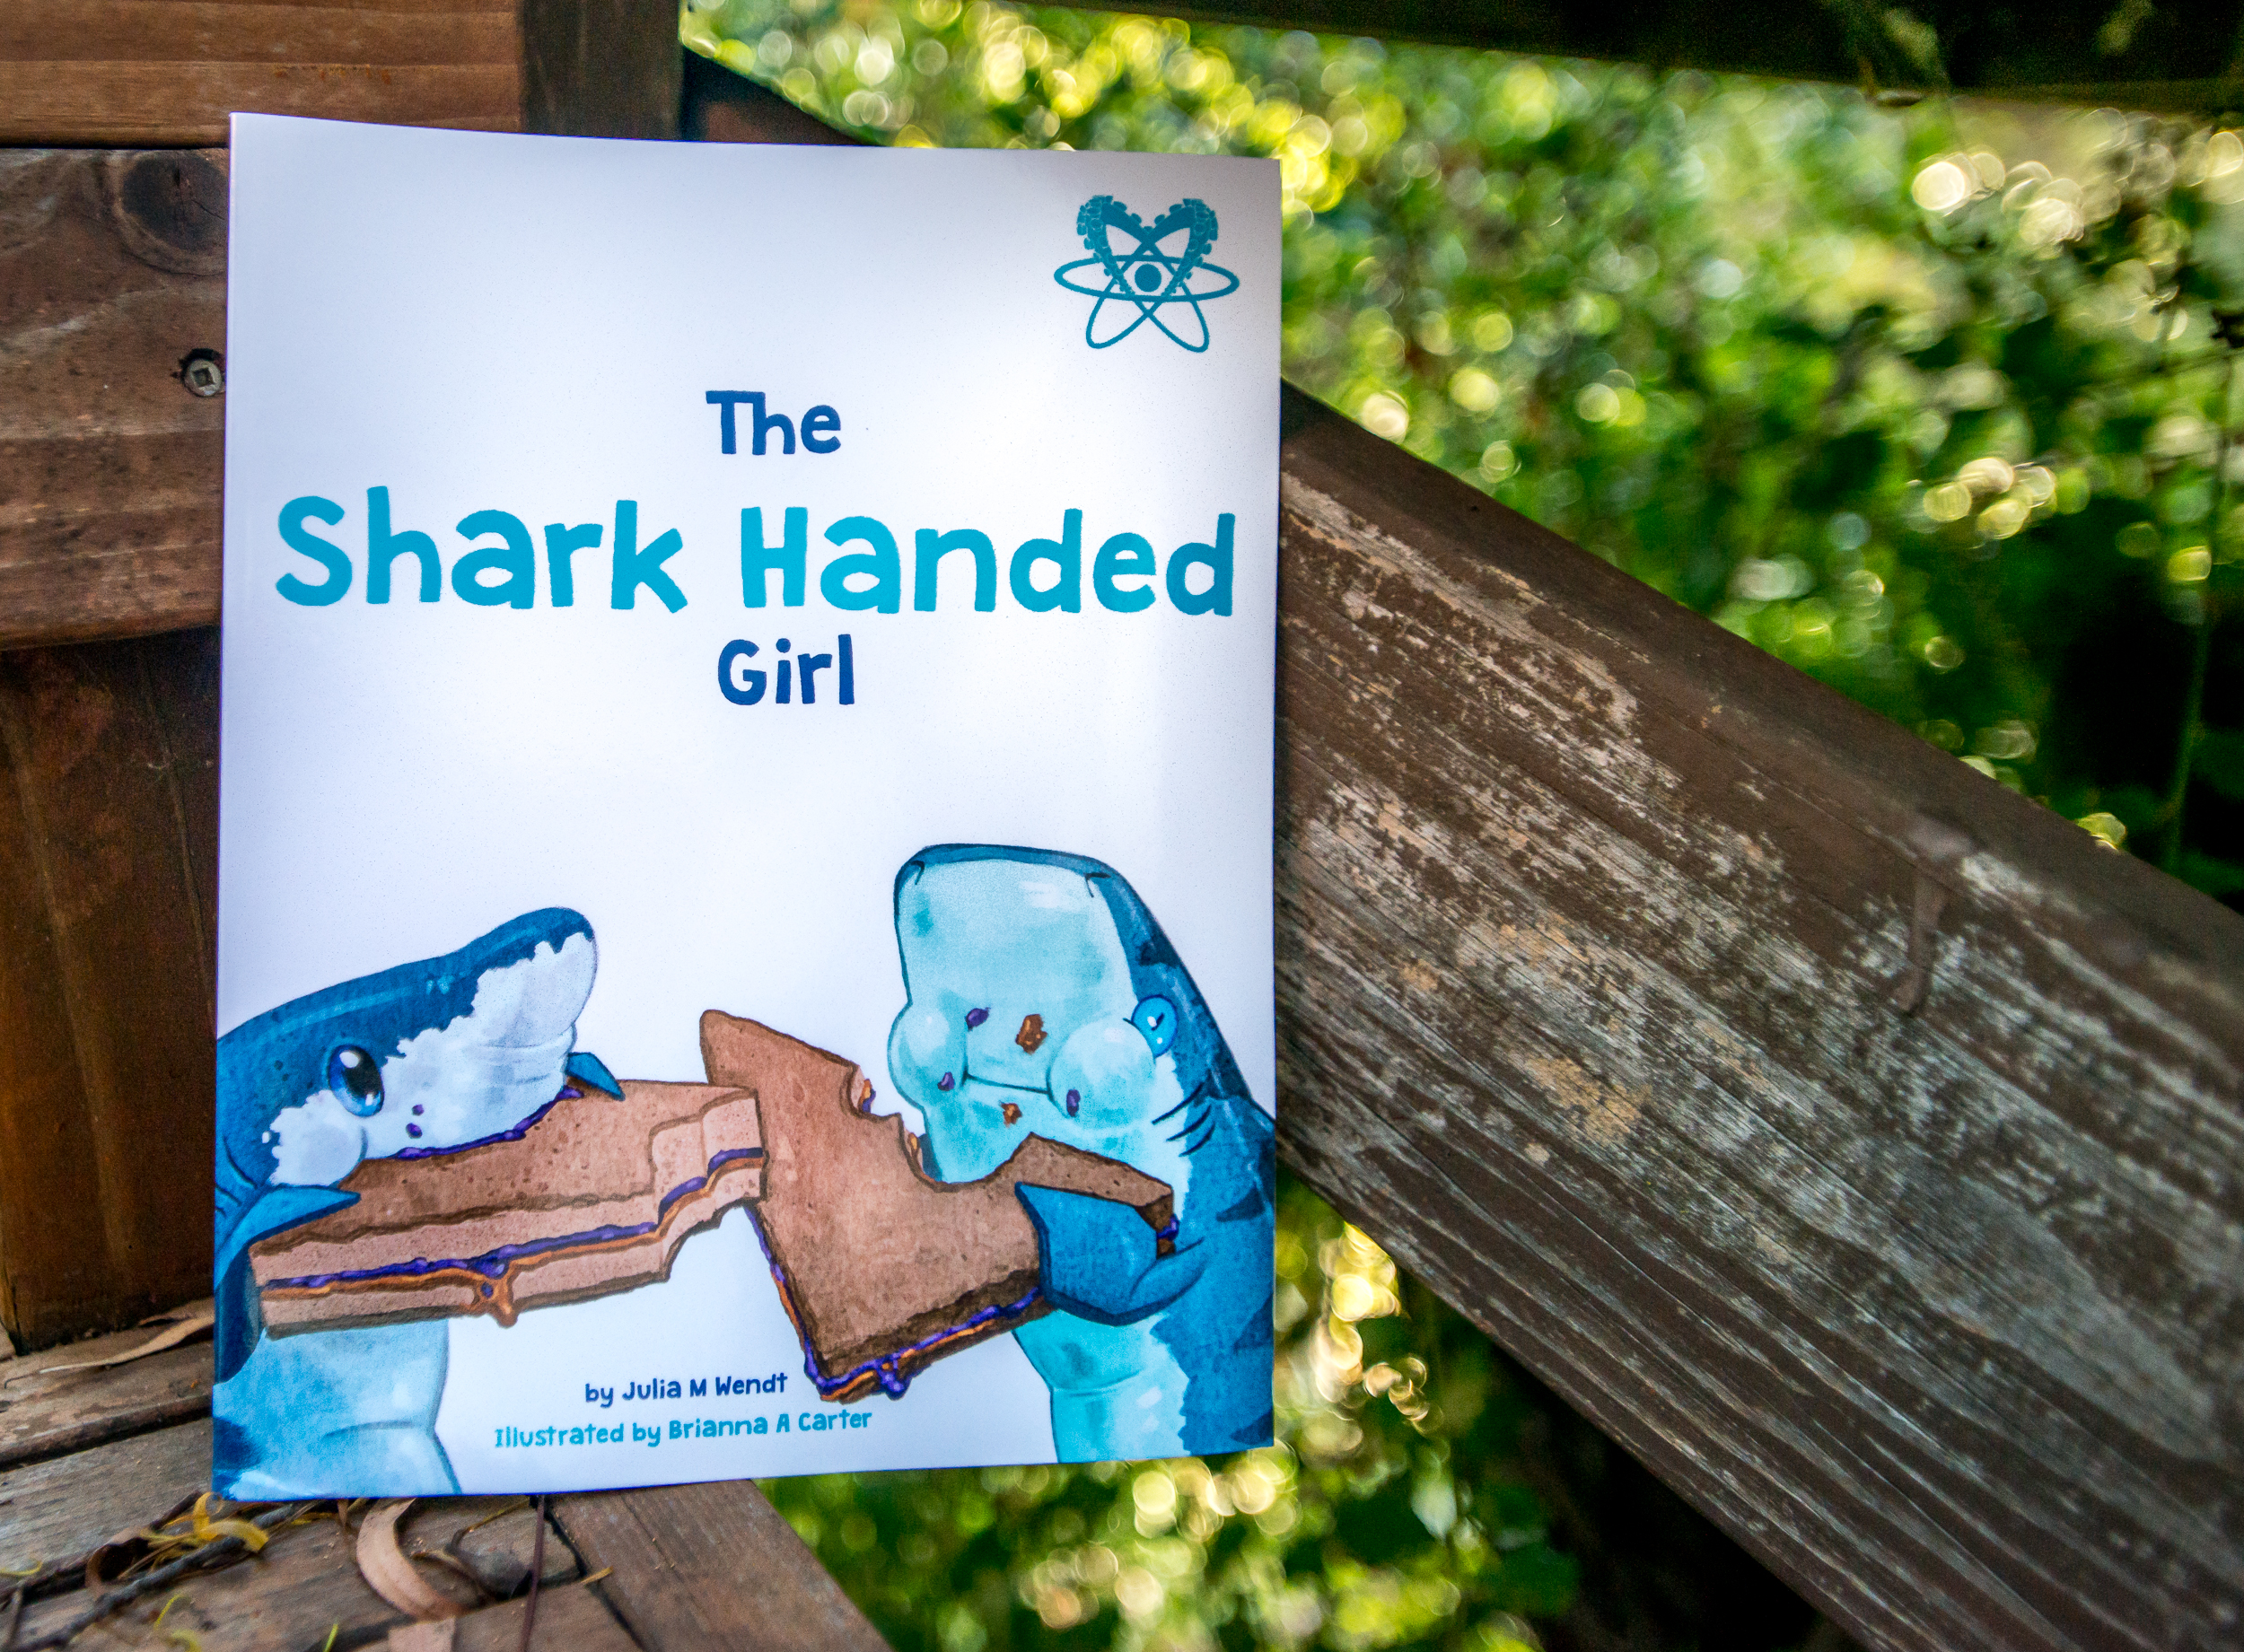 Julia's debut children's book, The Shark Handed Girl, illustrated by Brianna A. Carter